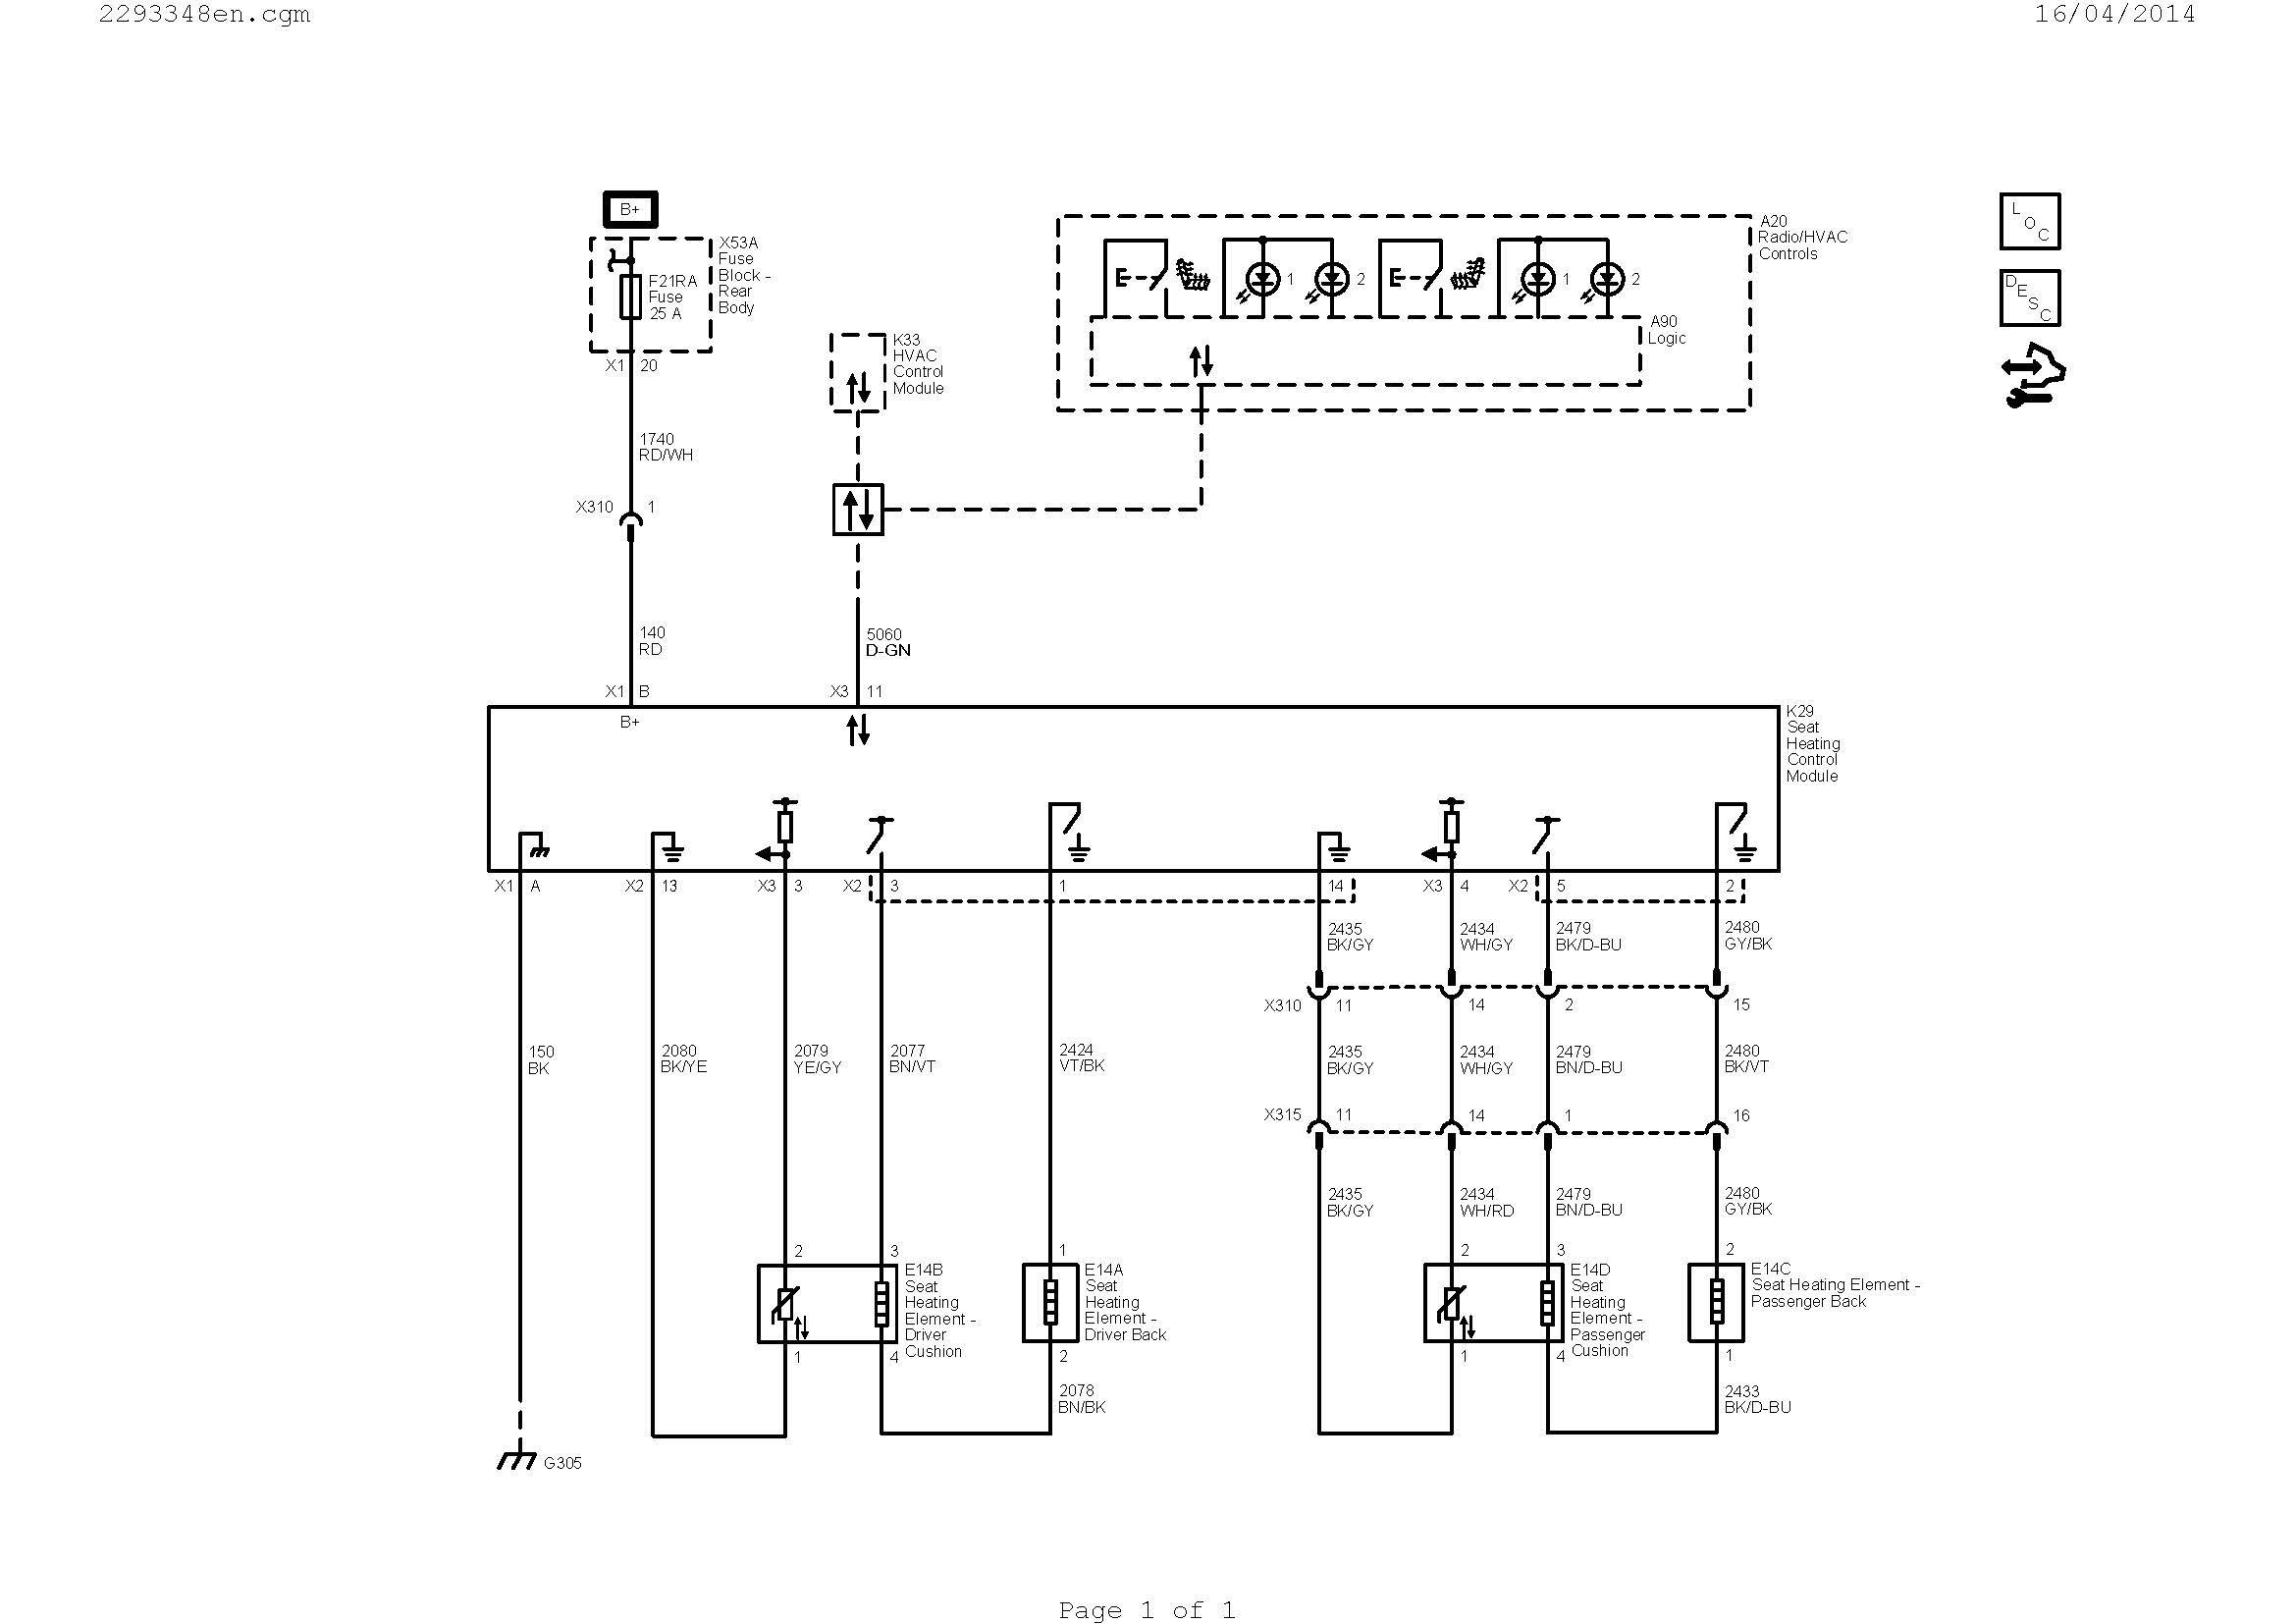 cm hoist wiring diagram Collection-fan wiring diagram Collection Wiring Diagram For Changeover Relay Inspirationa Wiring Diagram Ac Valid Hvac DOWNLOAD Wiring Diagram 17-g